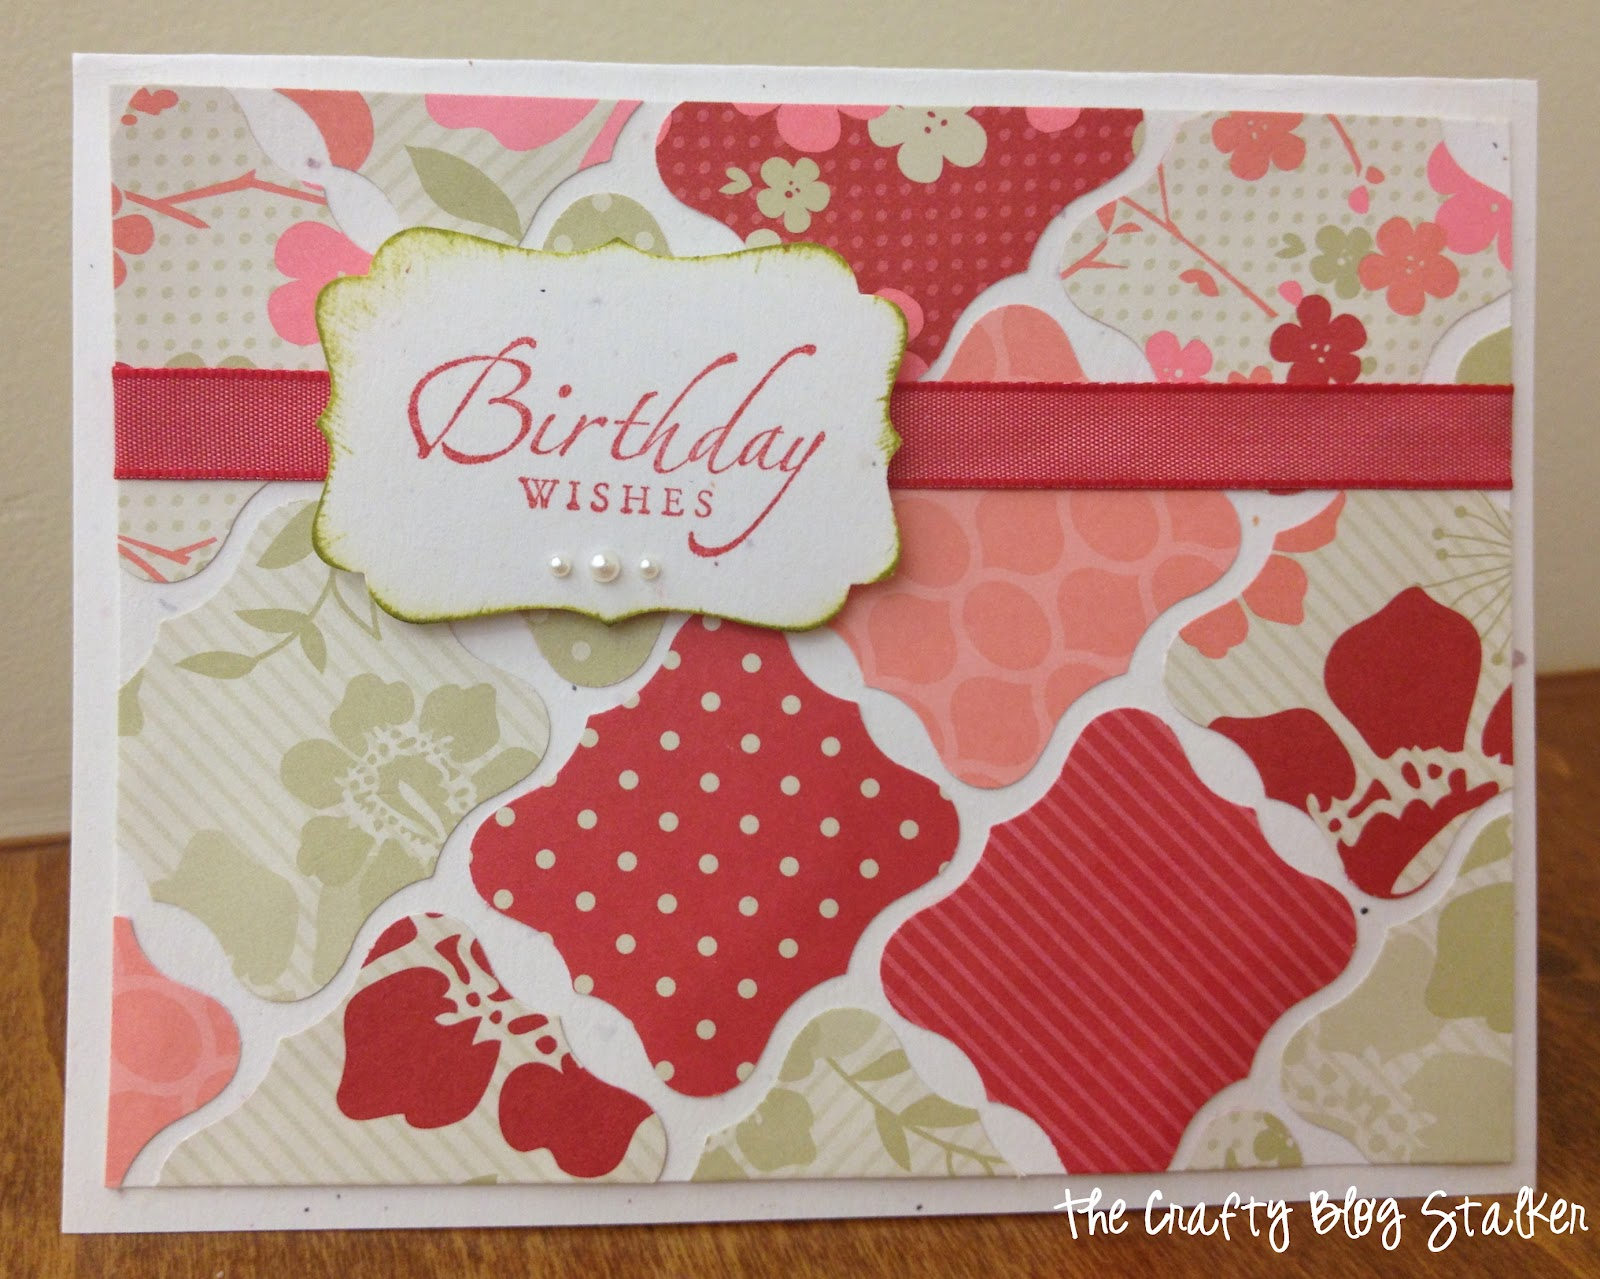 DIY Birthday Wishes CardThe Crafty Blog Stalker